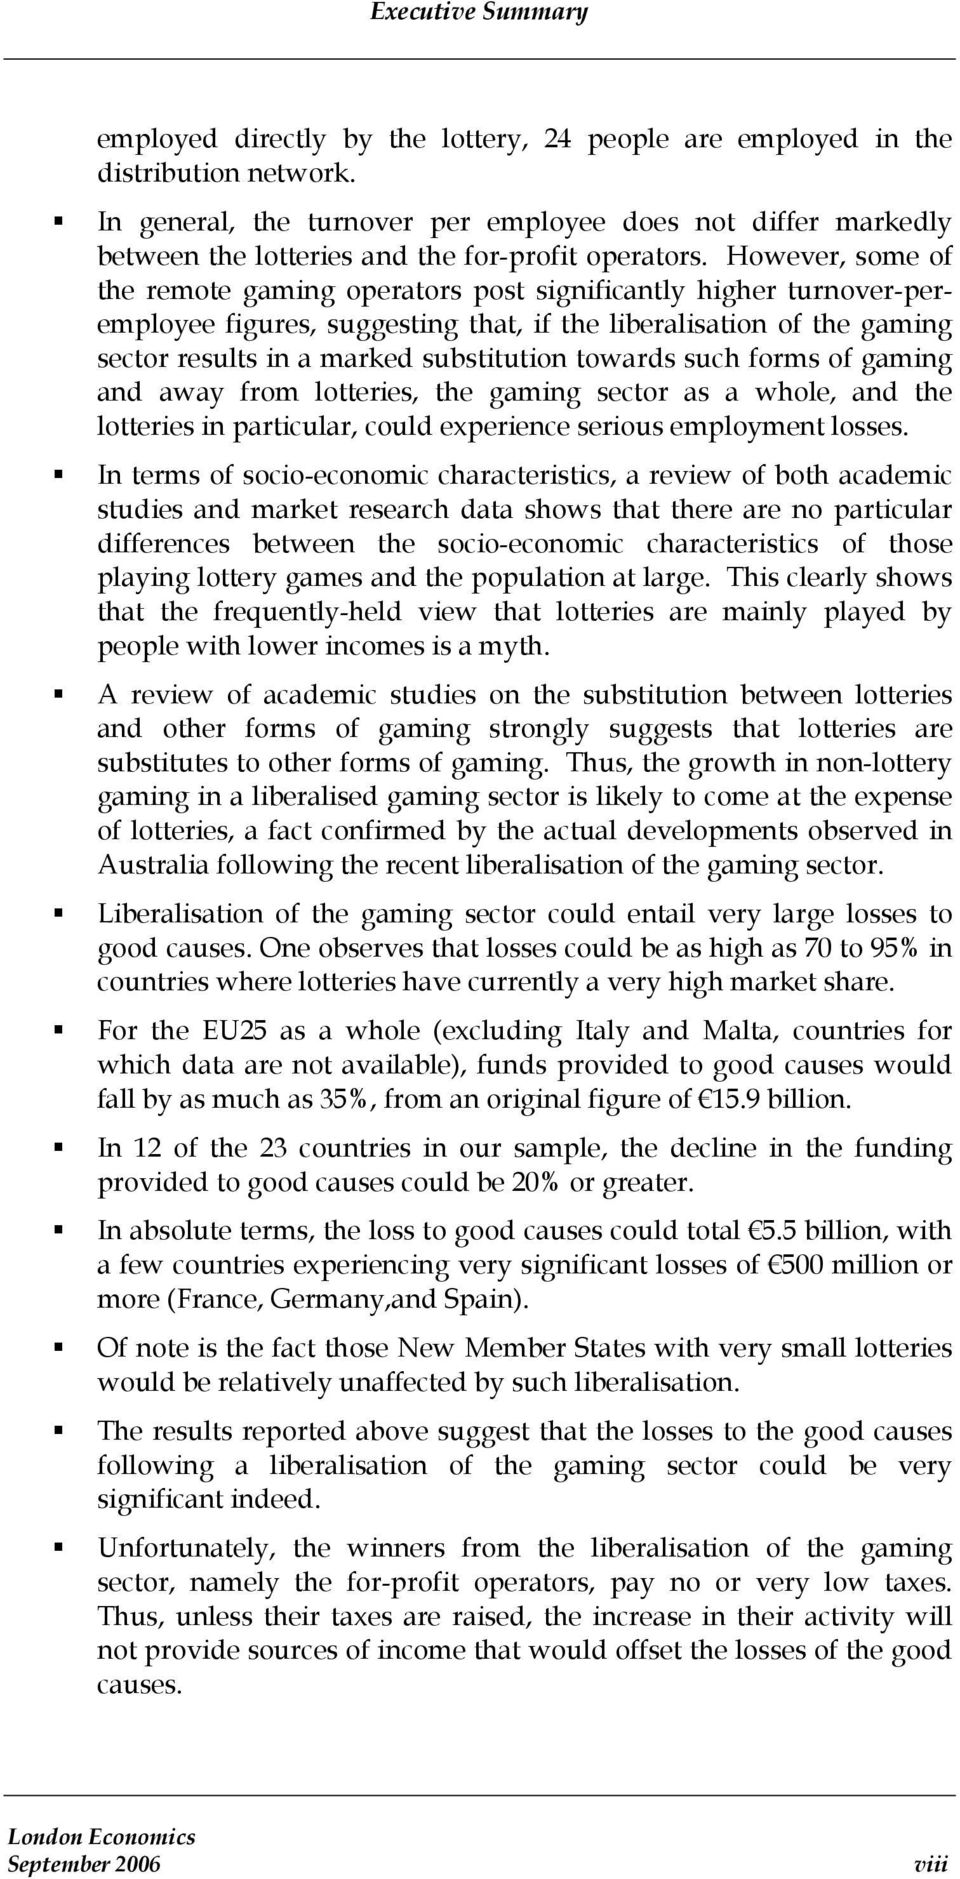 However, some of the remote gaming operators post significantly higher turnover-peremployee figures, suggesting that, if the liberalisation of the gaming sector results in a marked substitution